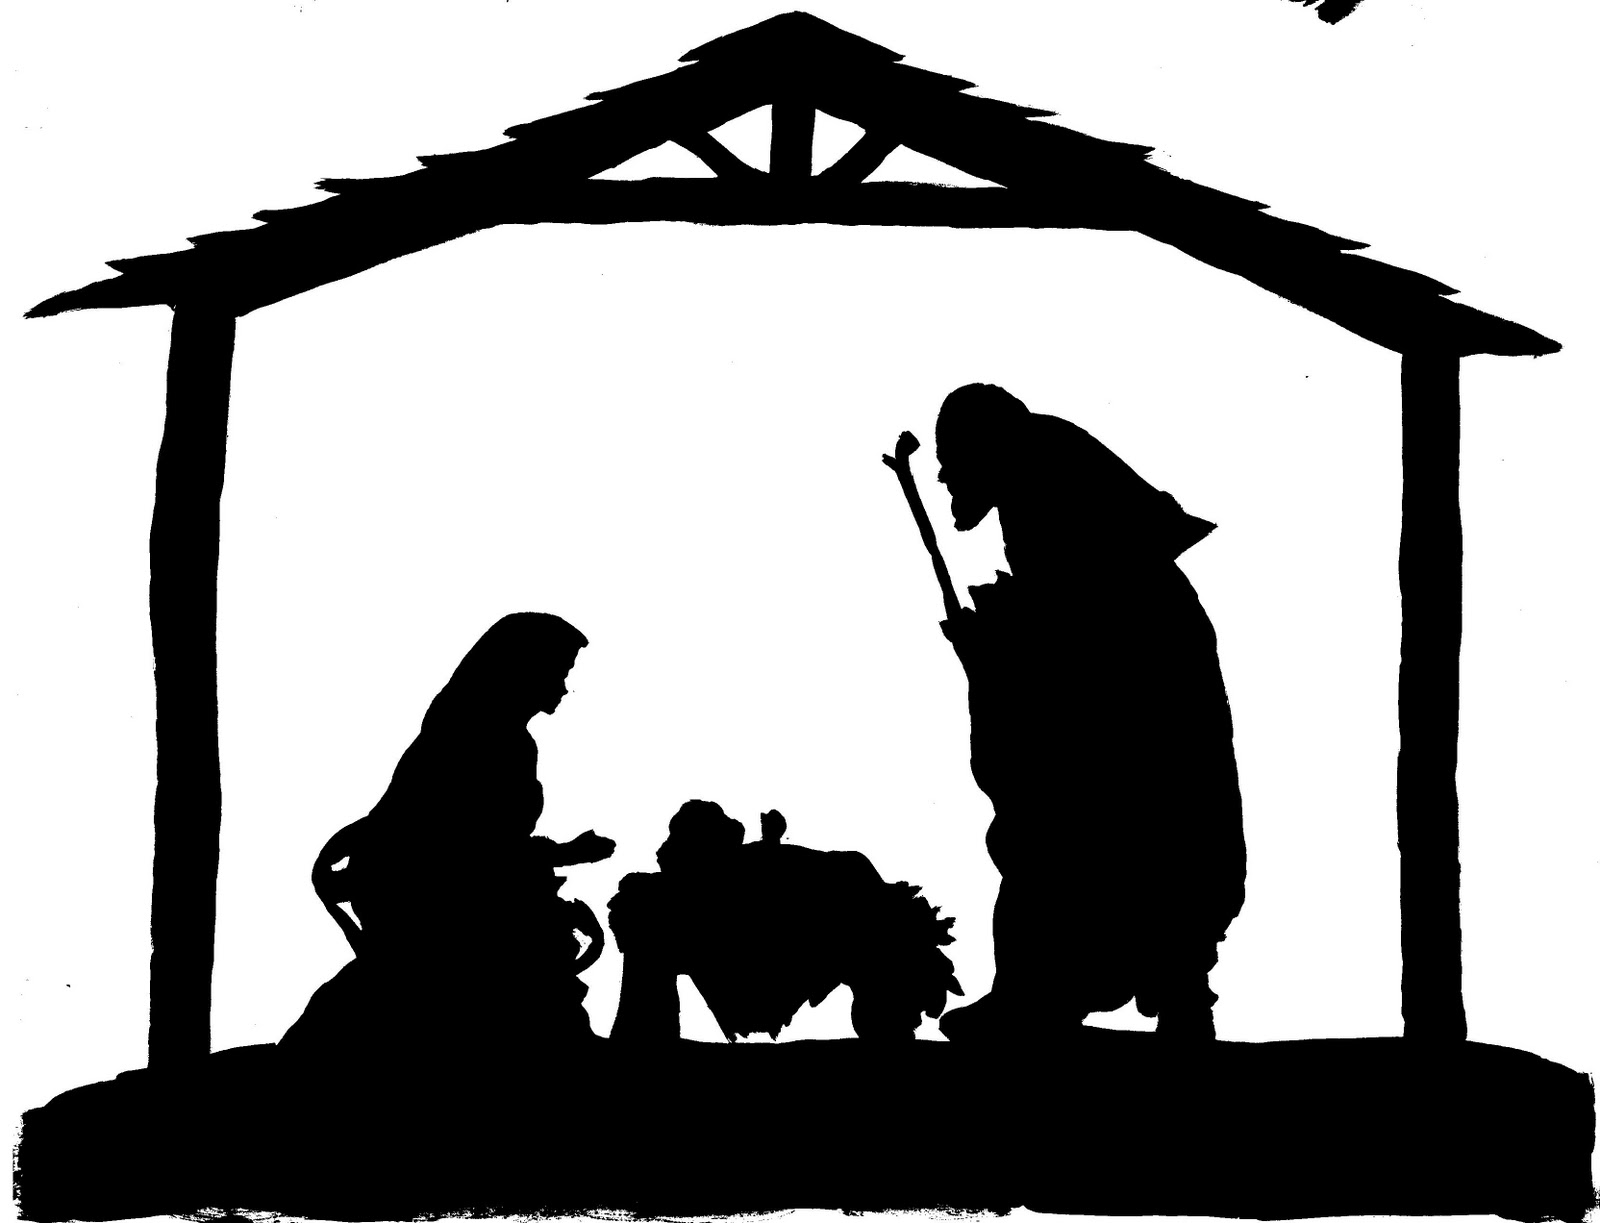 Free Png Nativity Scene - Nativity Transparent PNG Pictures - Free Icons and PNG Backgrounds